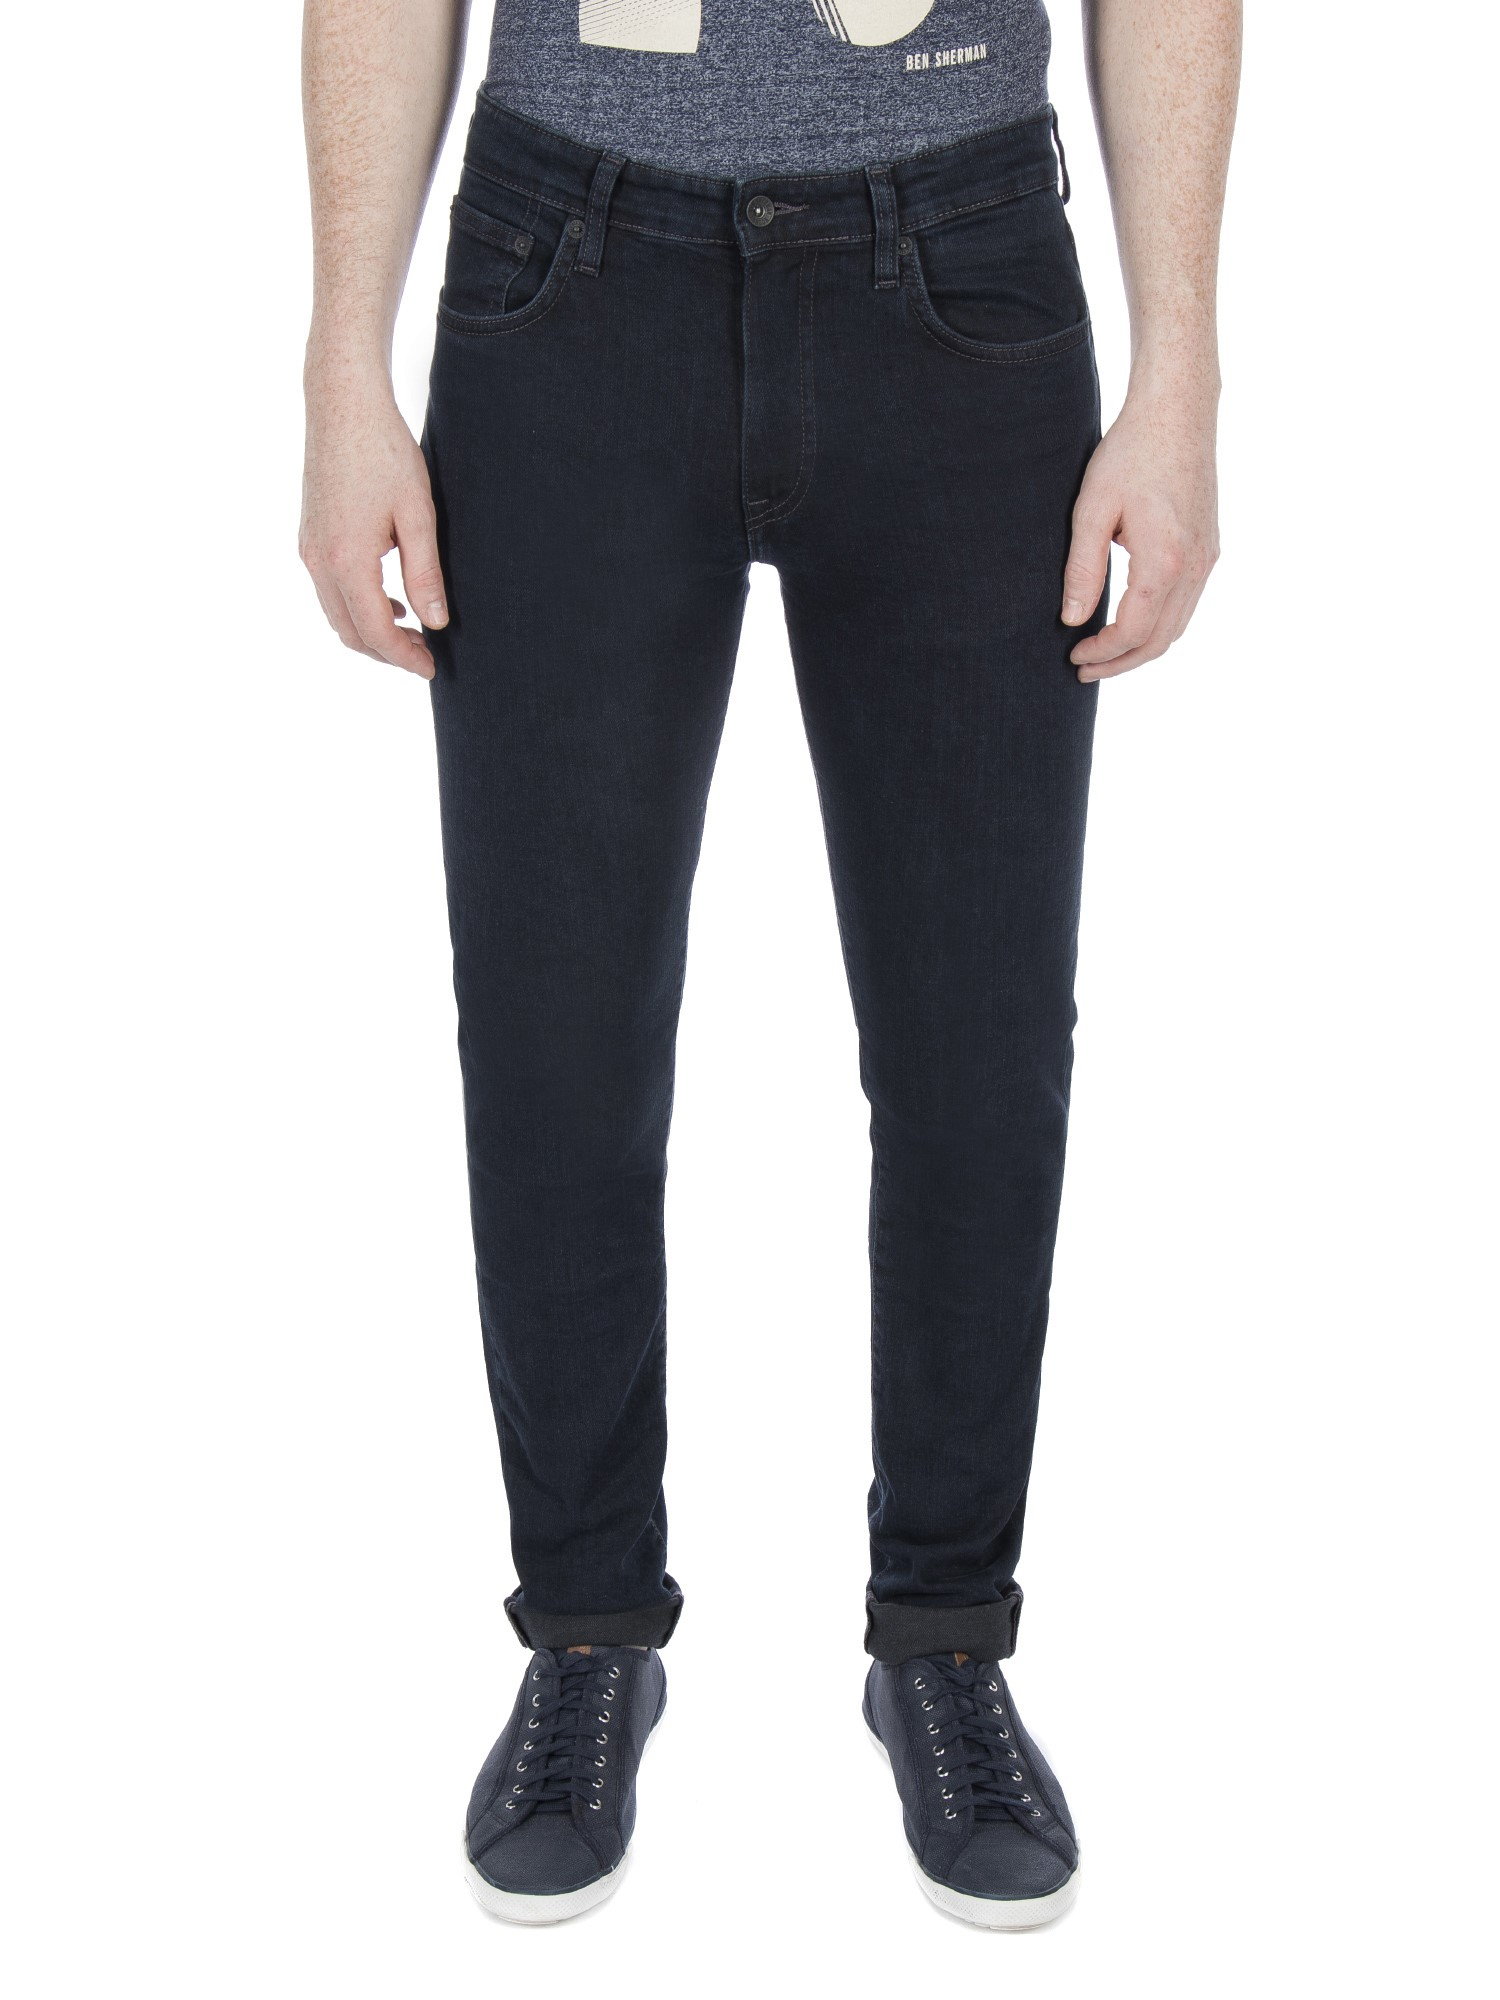 Ben Sherman Denim Rinse Wash Slim Fit Jean Slim Fit